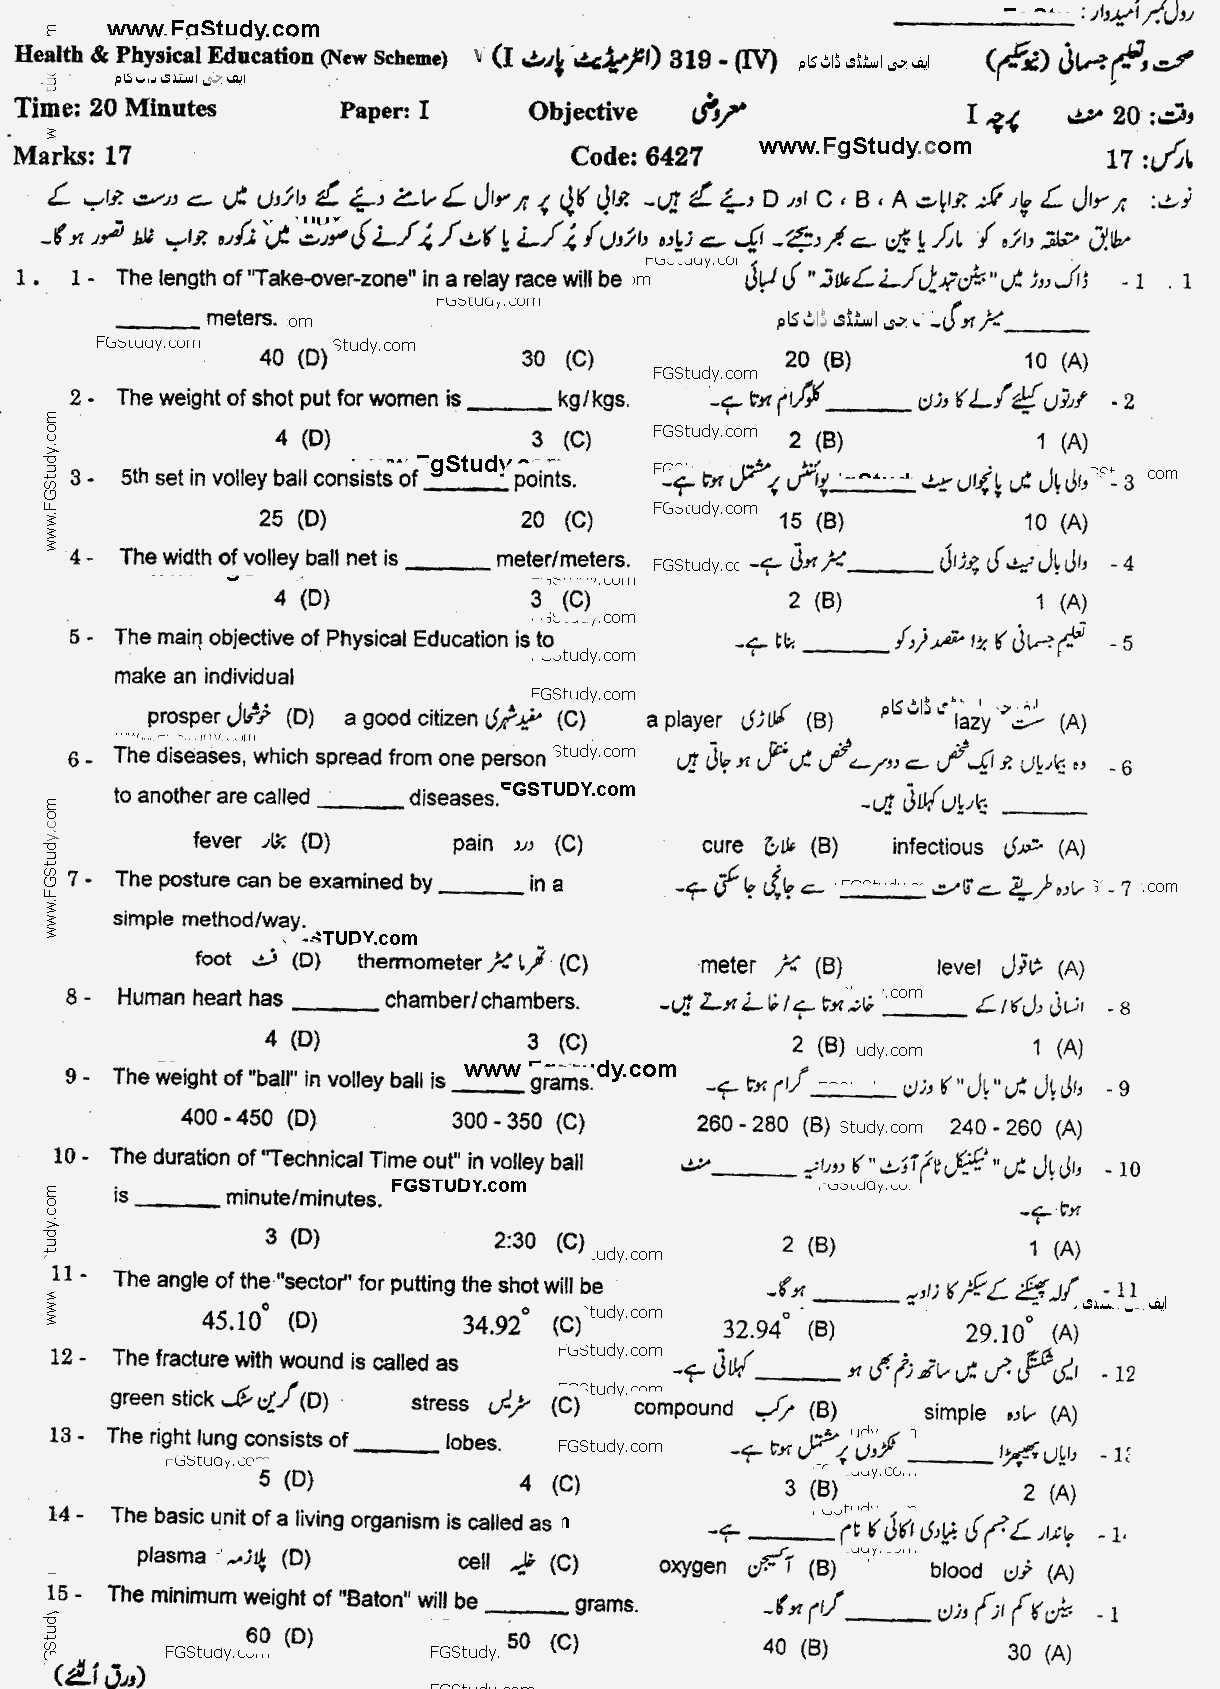 Health And Physical Education Objective 11th Class Past Papers 2019